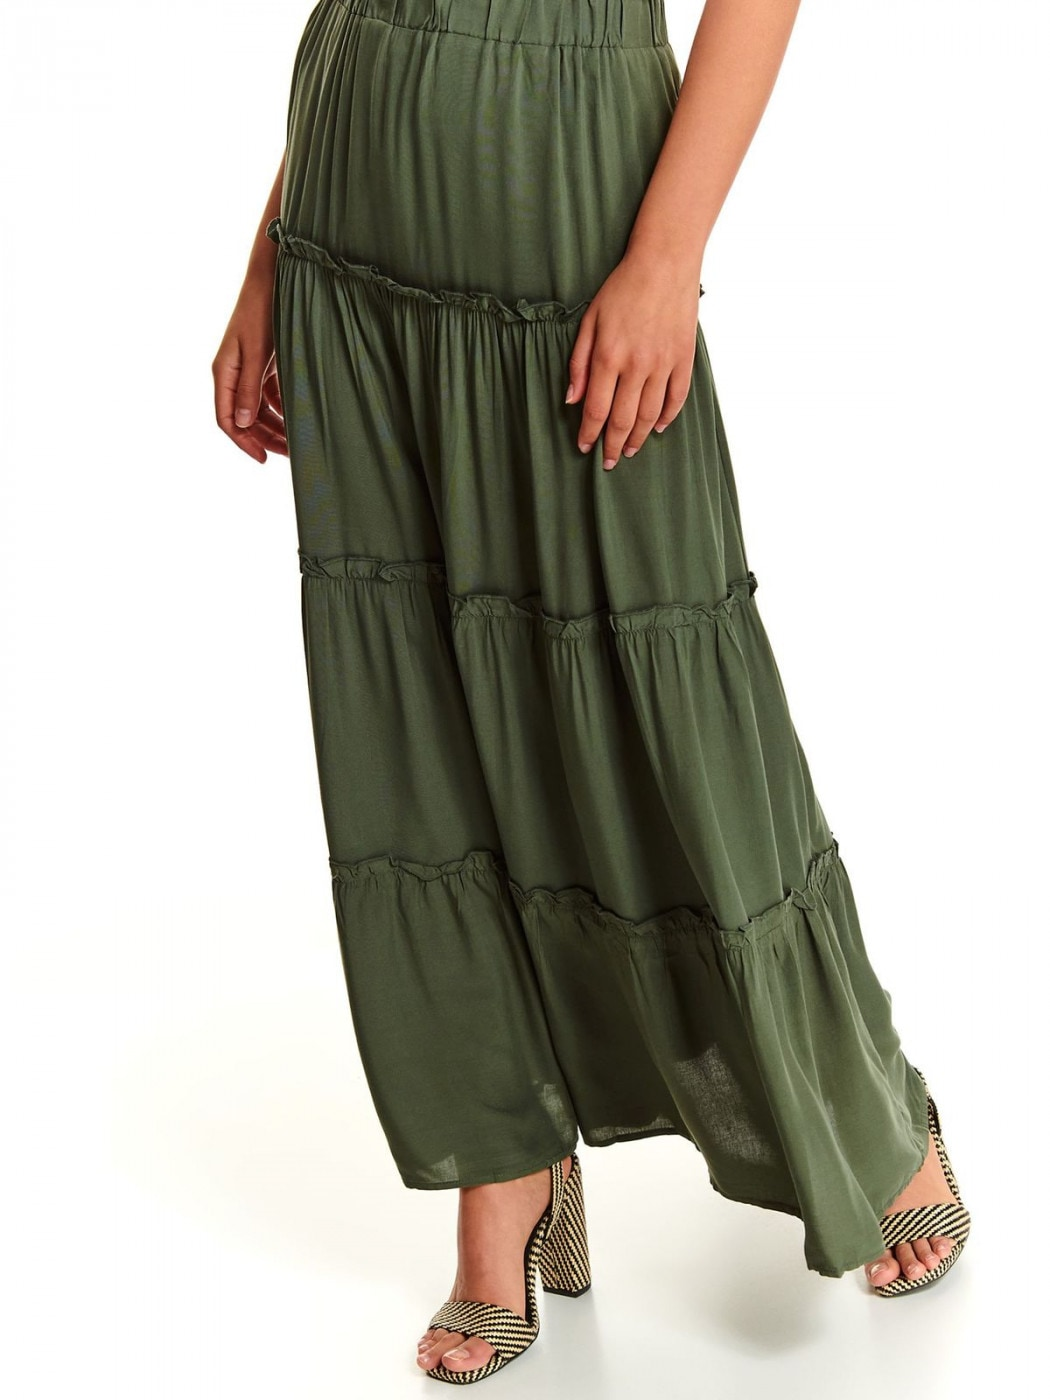 Women's skirt Top Secret Maxi